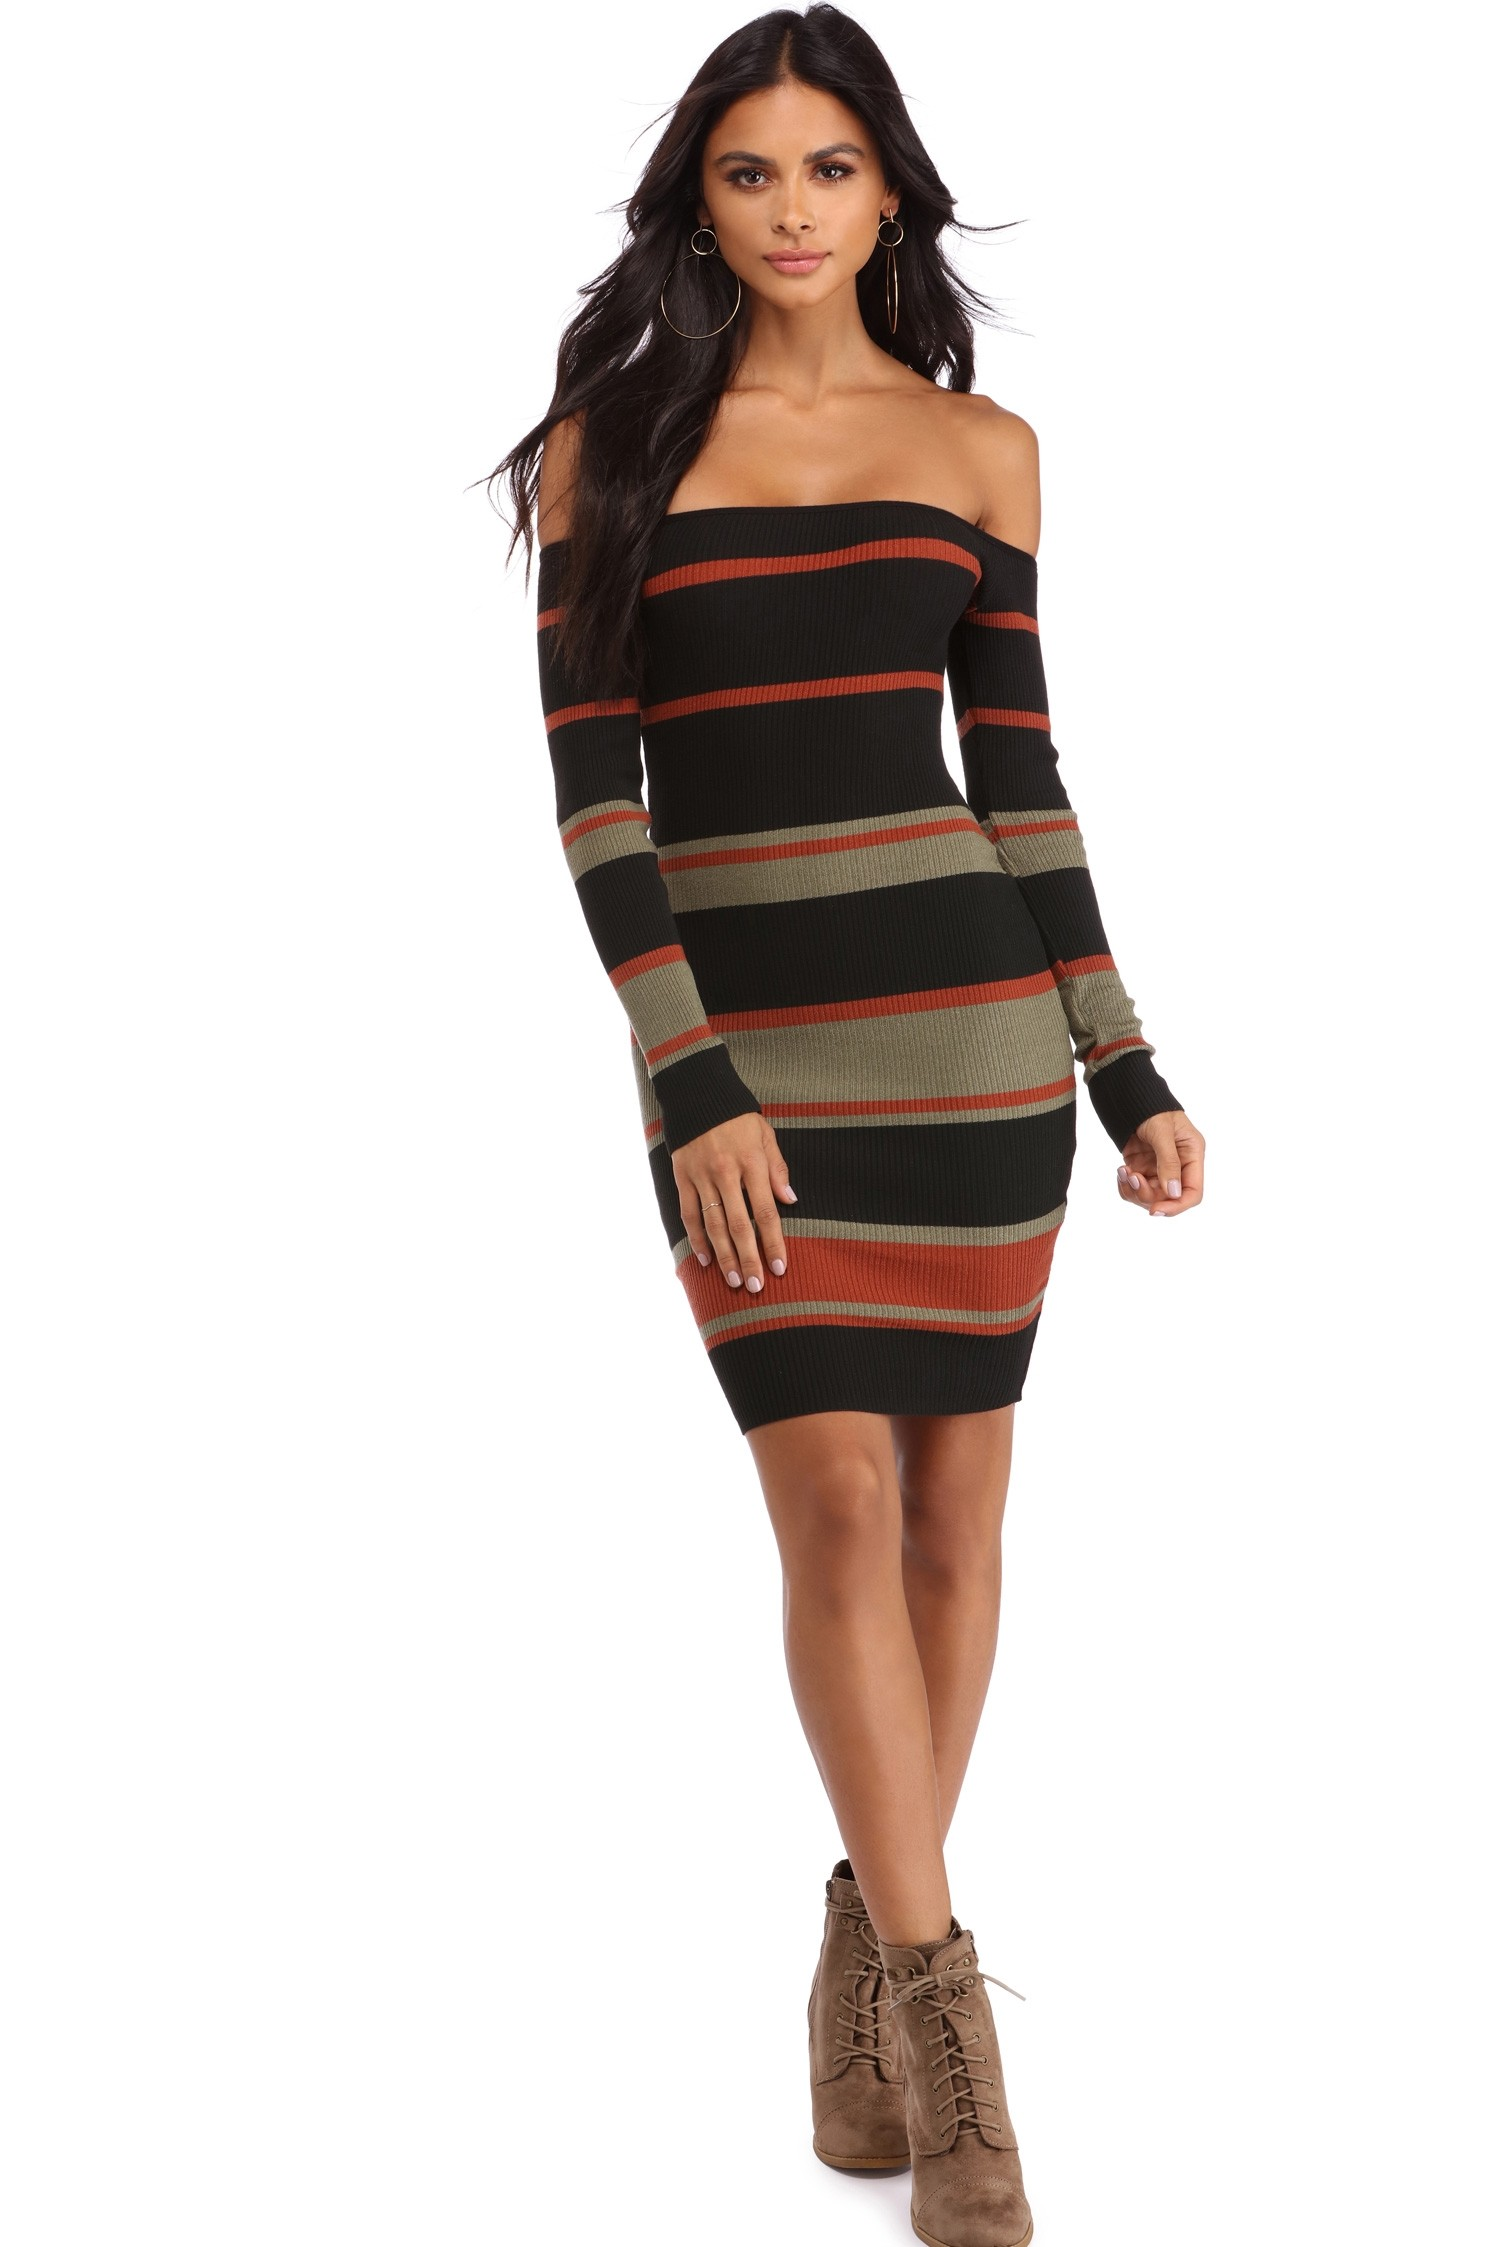 Sweater Dress Ideas For Women inspiredluv (32)